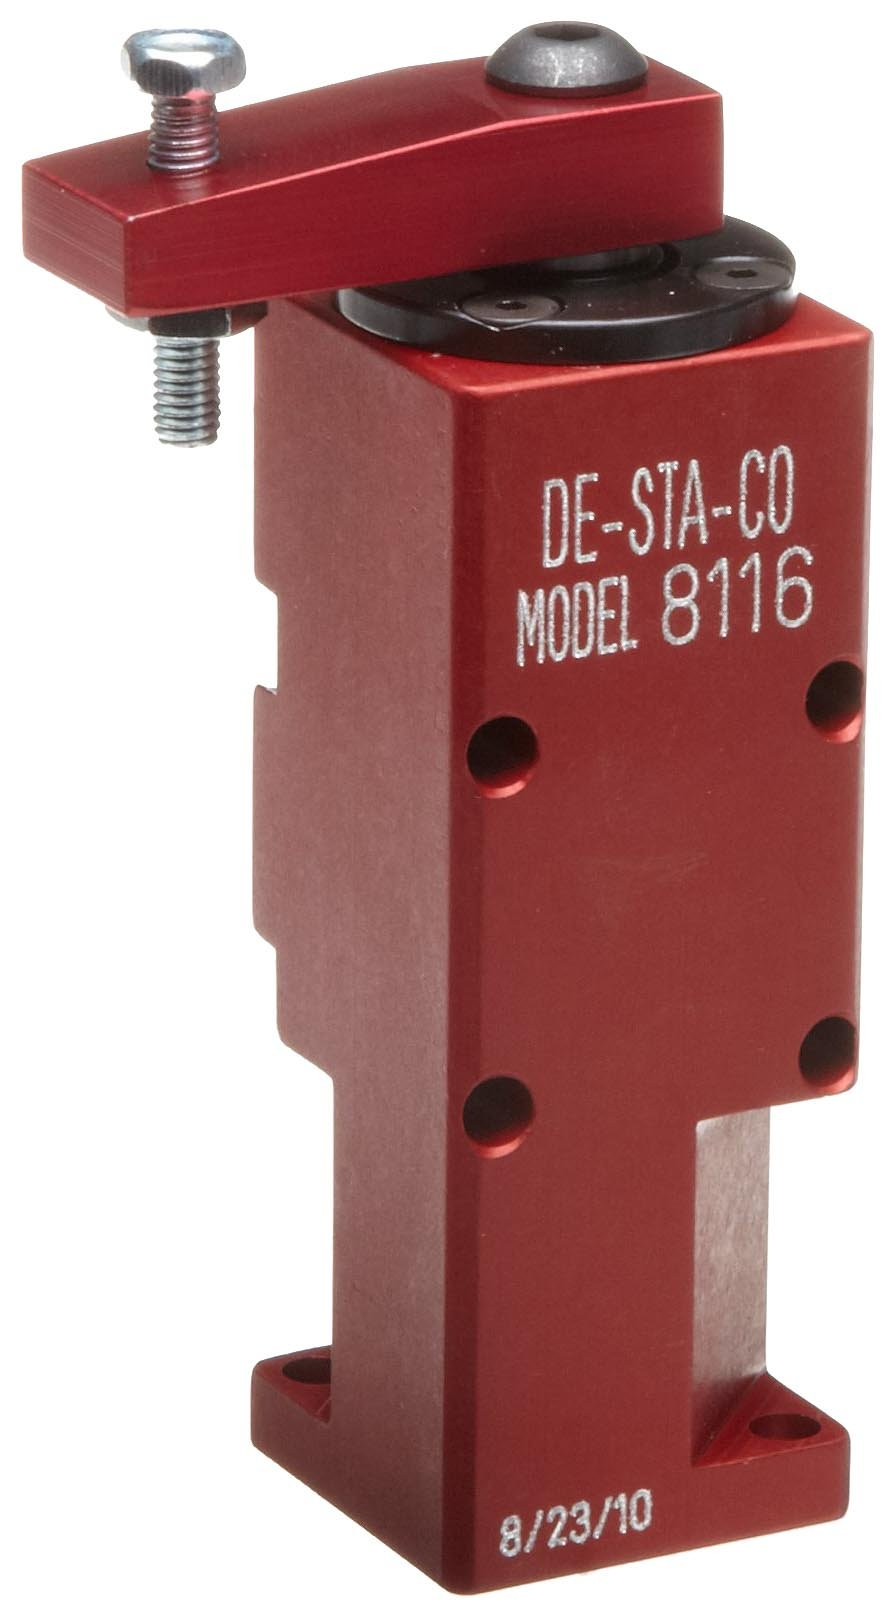 DE-STA-CO 8116-LA Less Arm Pneumatic Swing Clamp Arm by De-Sta-Co